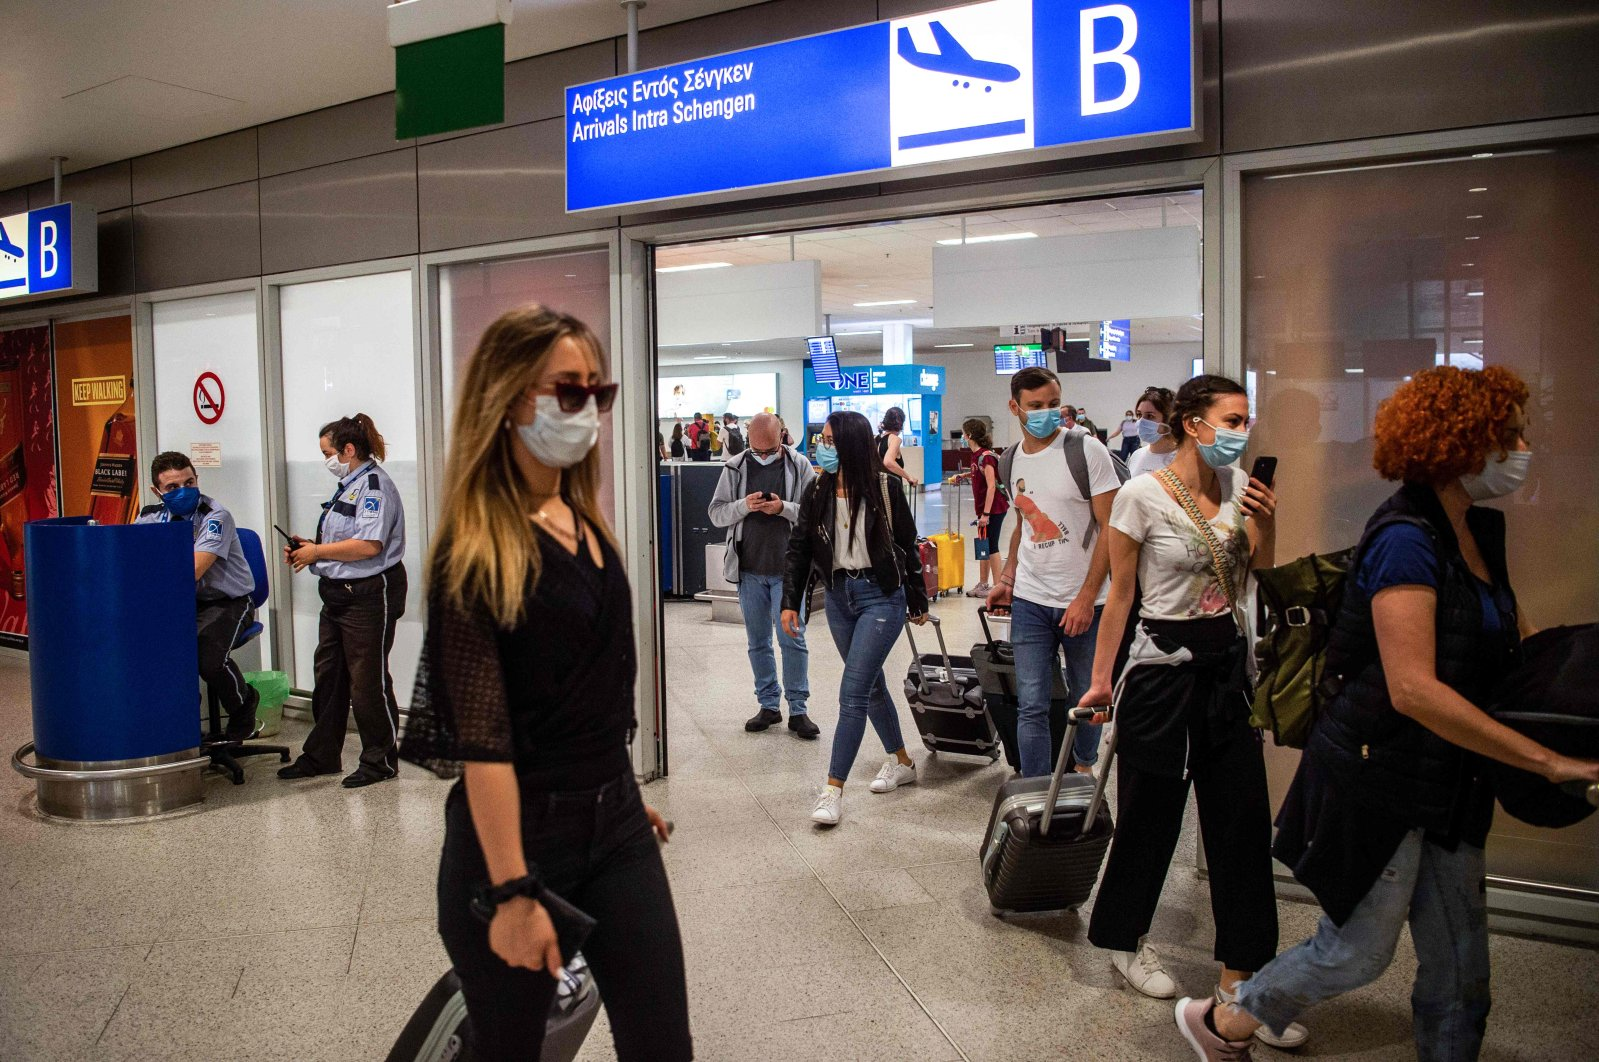 Passengers of a flight from Paris wearing protective face masks arrive at the Eleftherios Venizelos International Airport in Athens, June 15, 2020. (AFP Photo)